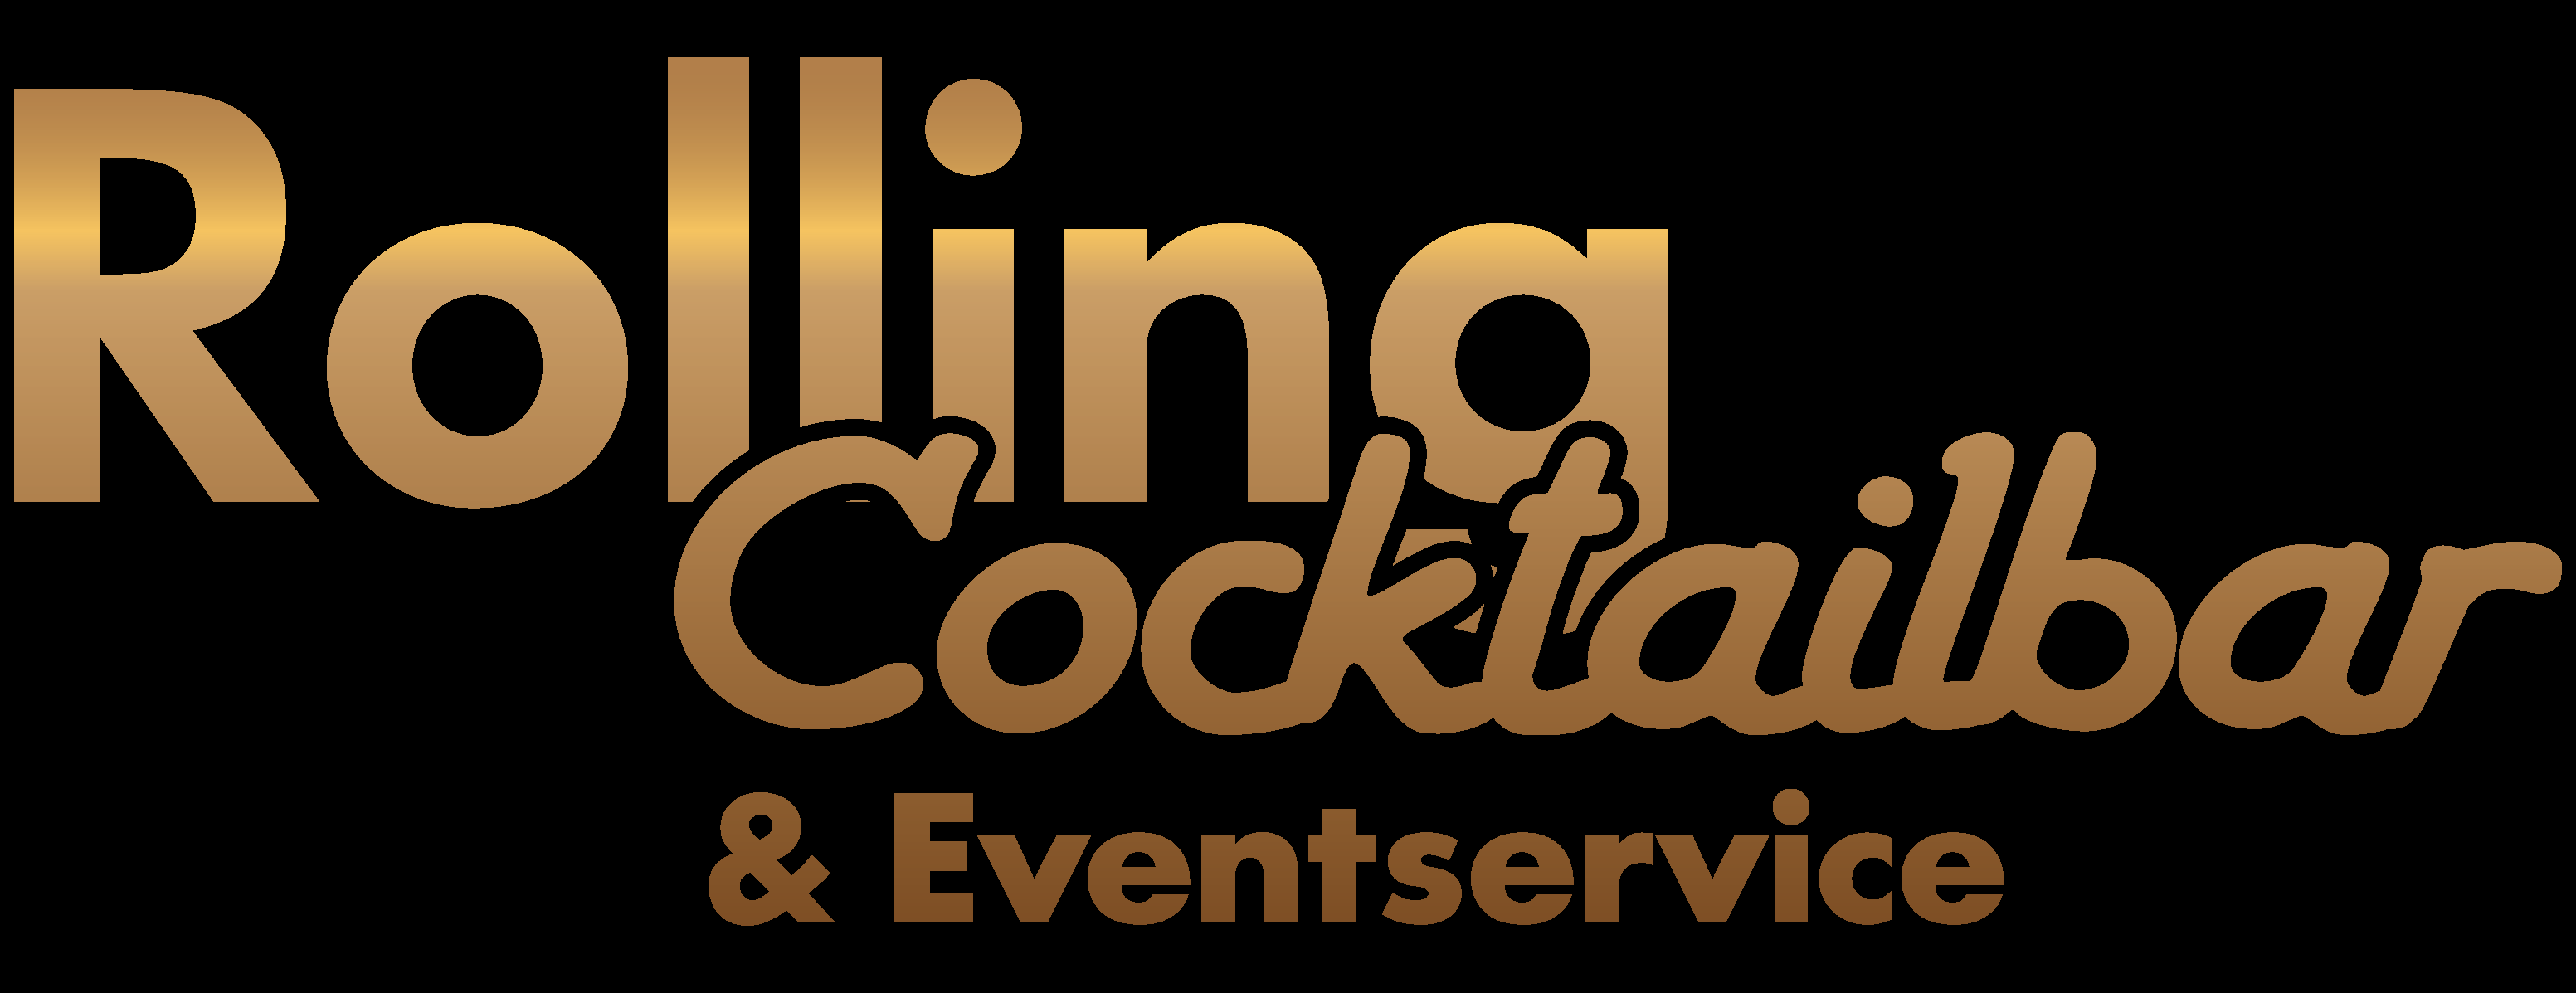 Rolling Cocktailbar & Eventservice